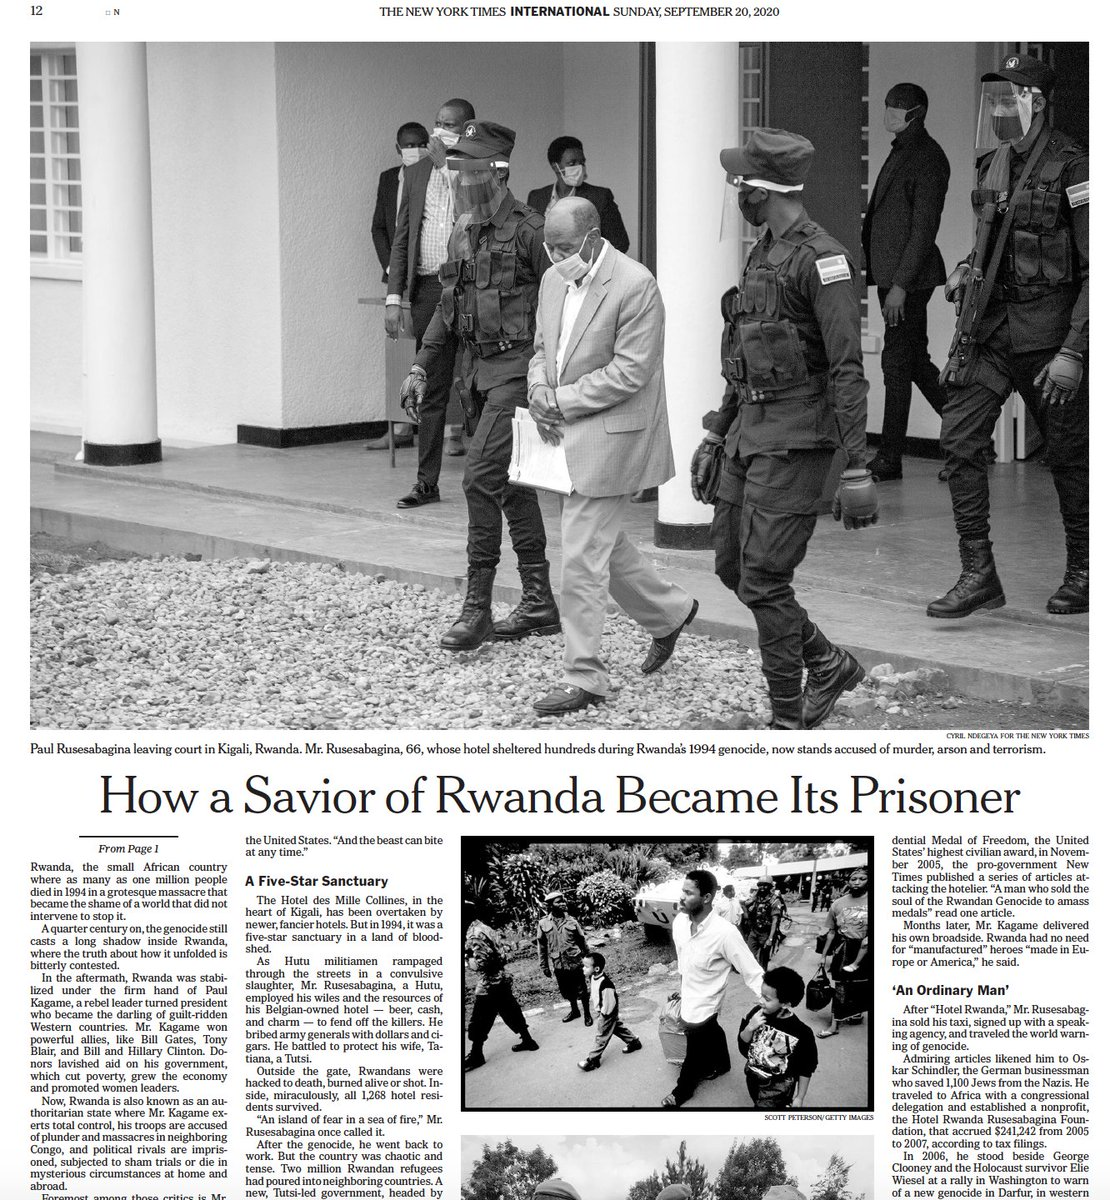 The result is a story about the unlikely trajectory of Paul Rusesabagina, but also about fear and loathing in Kagame's Rwanda, and the bitter battle of narratives that endures a quarter century after the genocide.   You can read it in today's @nytimes  https://t.co/oFEPNNGWzY https://t.co/A0lWLBQmX4